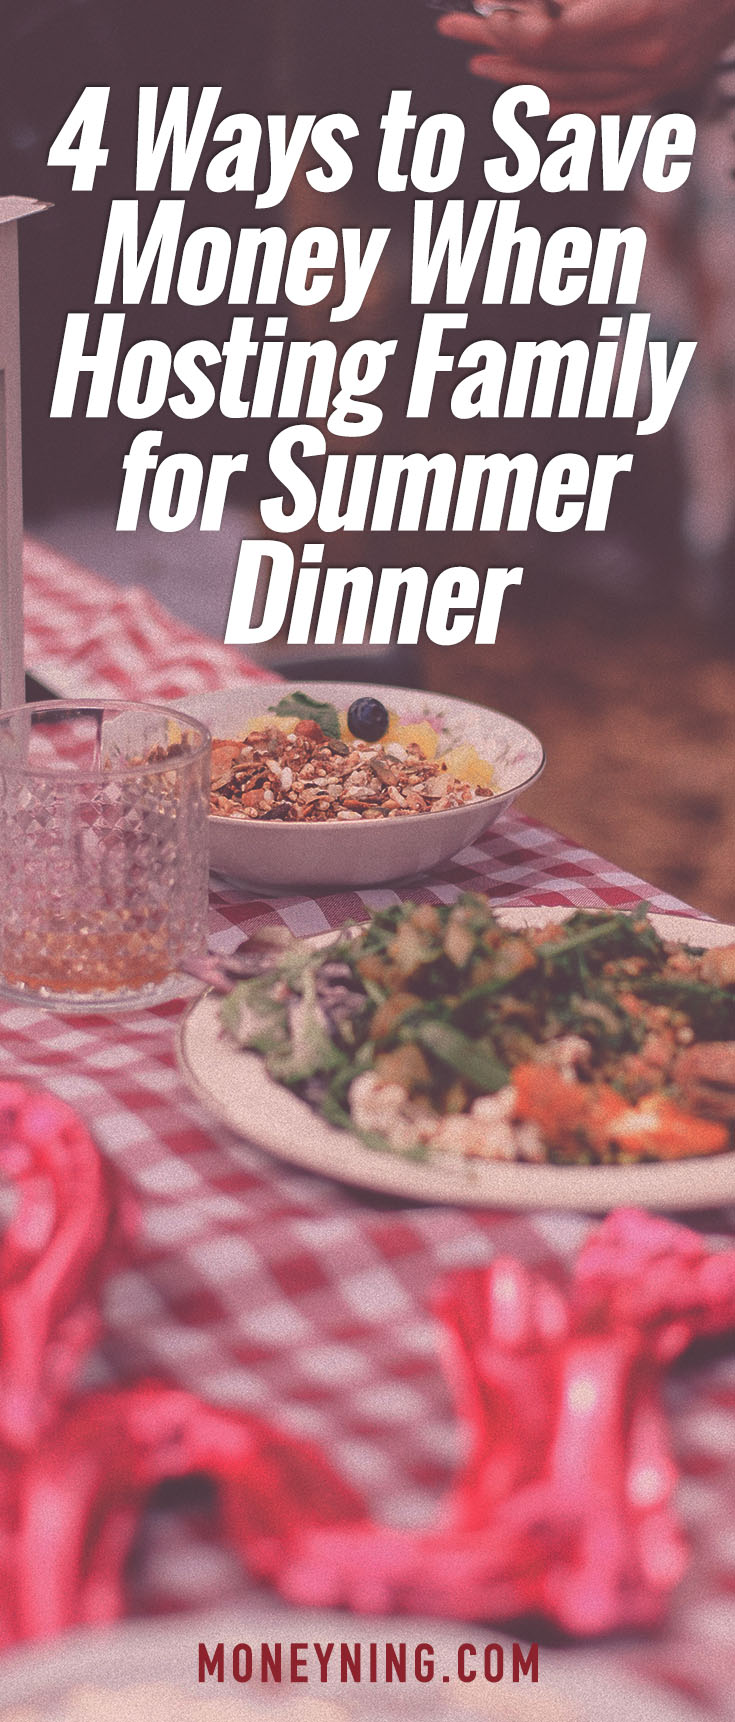 save money on family dinner